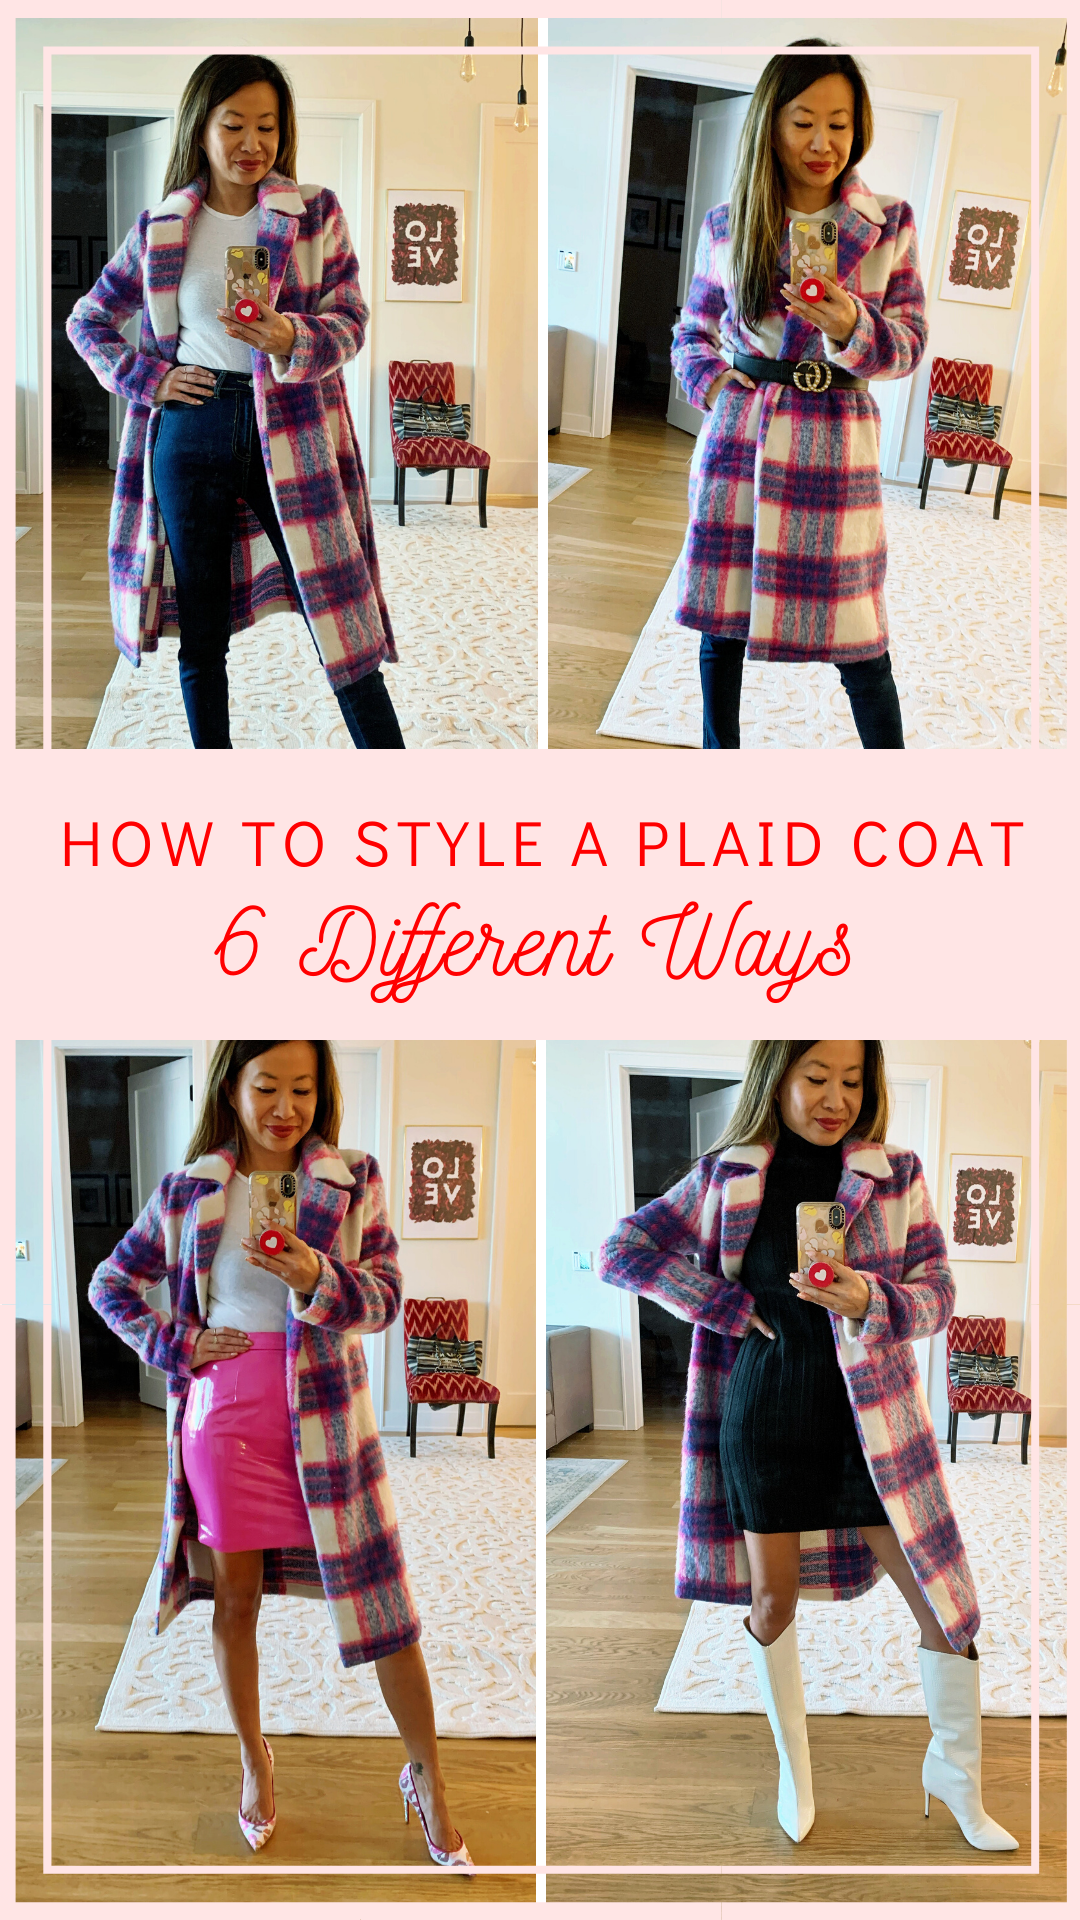 how to style a plaid coat, plaid coat, plaid coat outfits, plaid coats for women, red and blue plaid coat, red plaid coat, plaid coat street style, plaid coat style, long plaid coat, winter plaid coat, winter outfit ideas, printed coat style, how to style a plaid coat 6 ways, Jennifer Worman, Chicago blogger, style blogger, blogger outfits, blogger style